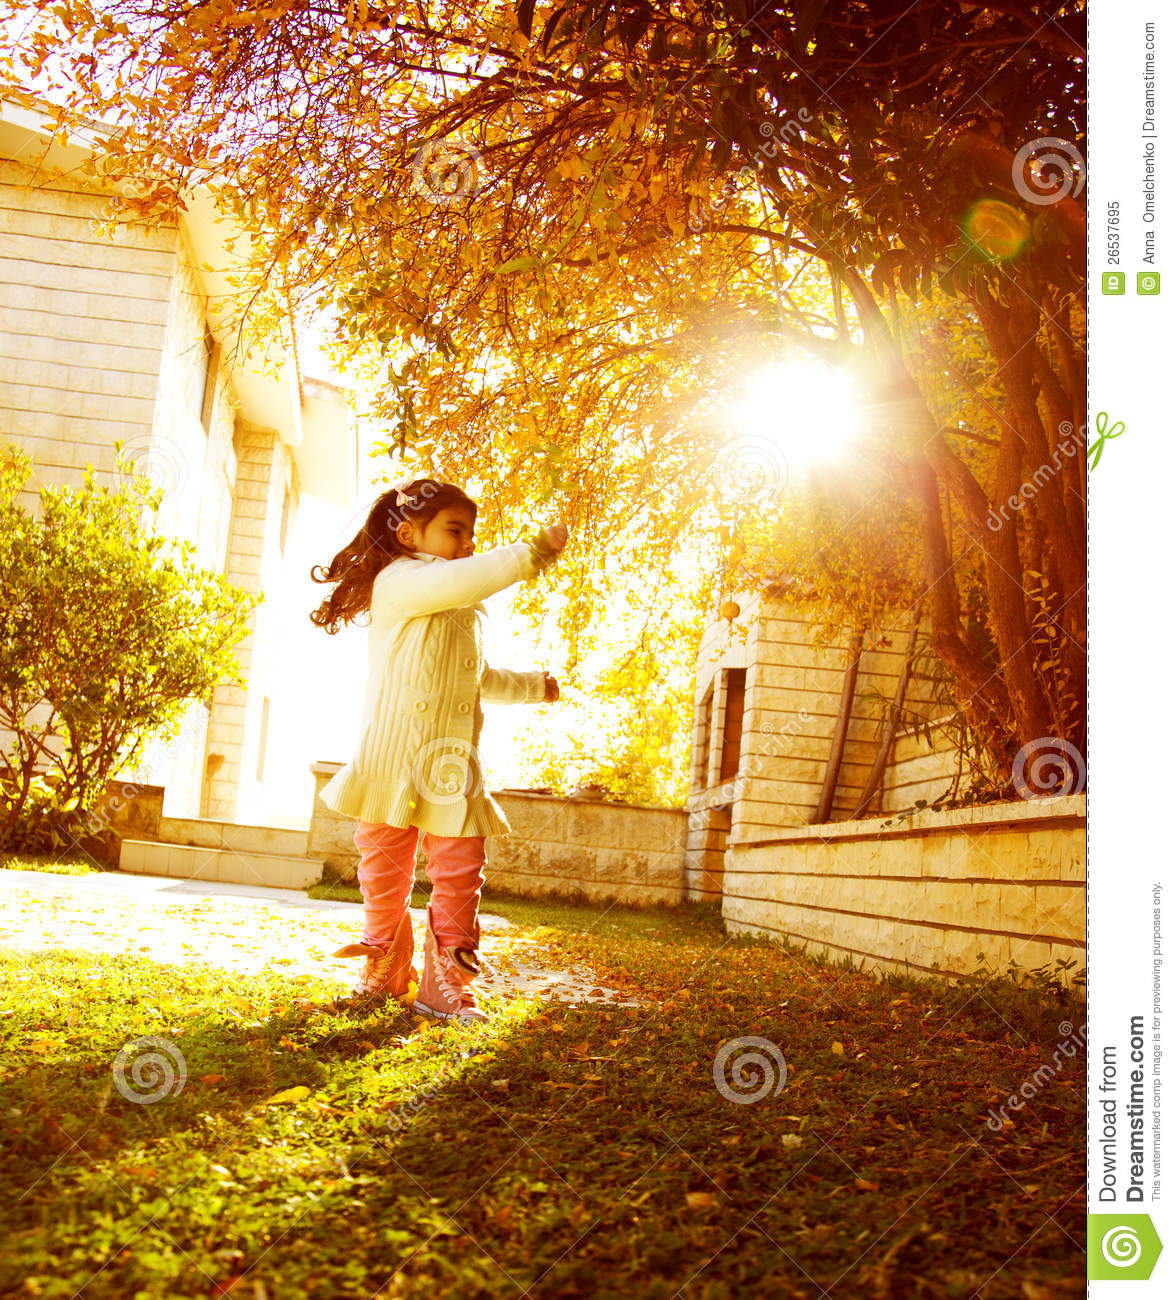 Snoopy Fall Wallpaper Small Girl In Sunny Autumn Day Royalty Free Stock Photo